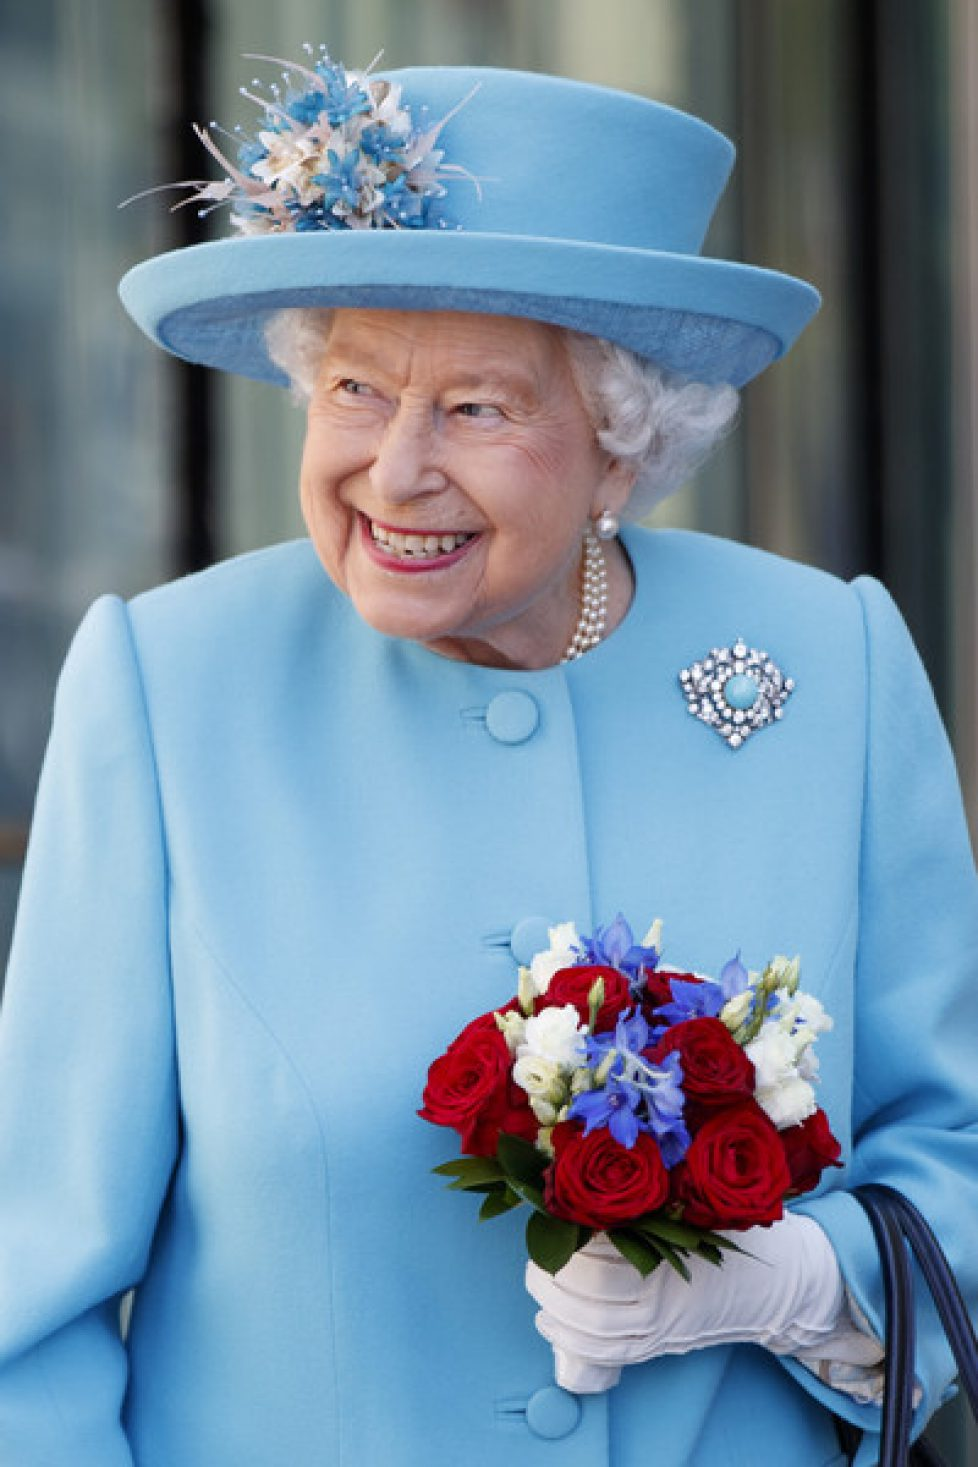 Queen+Visits+British+Airways+Headquarters+FCY31oZn5TZl